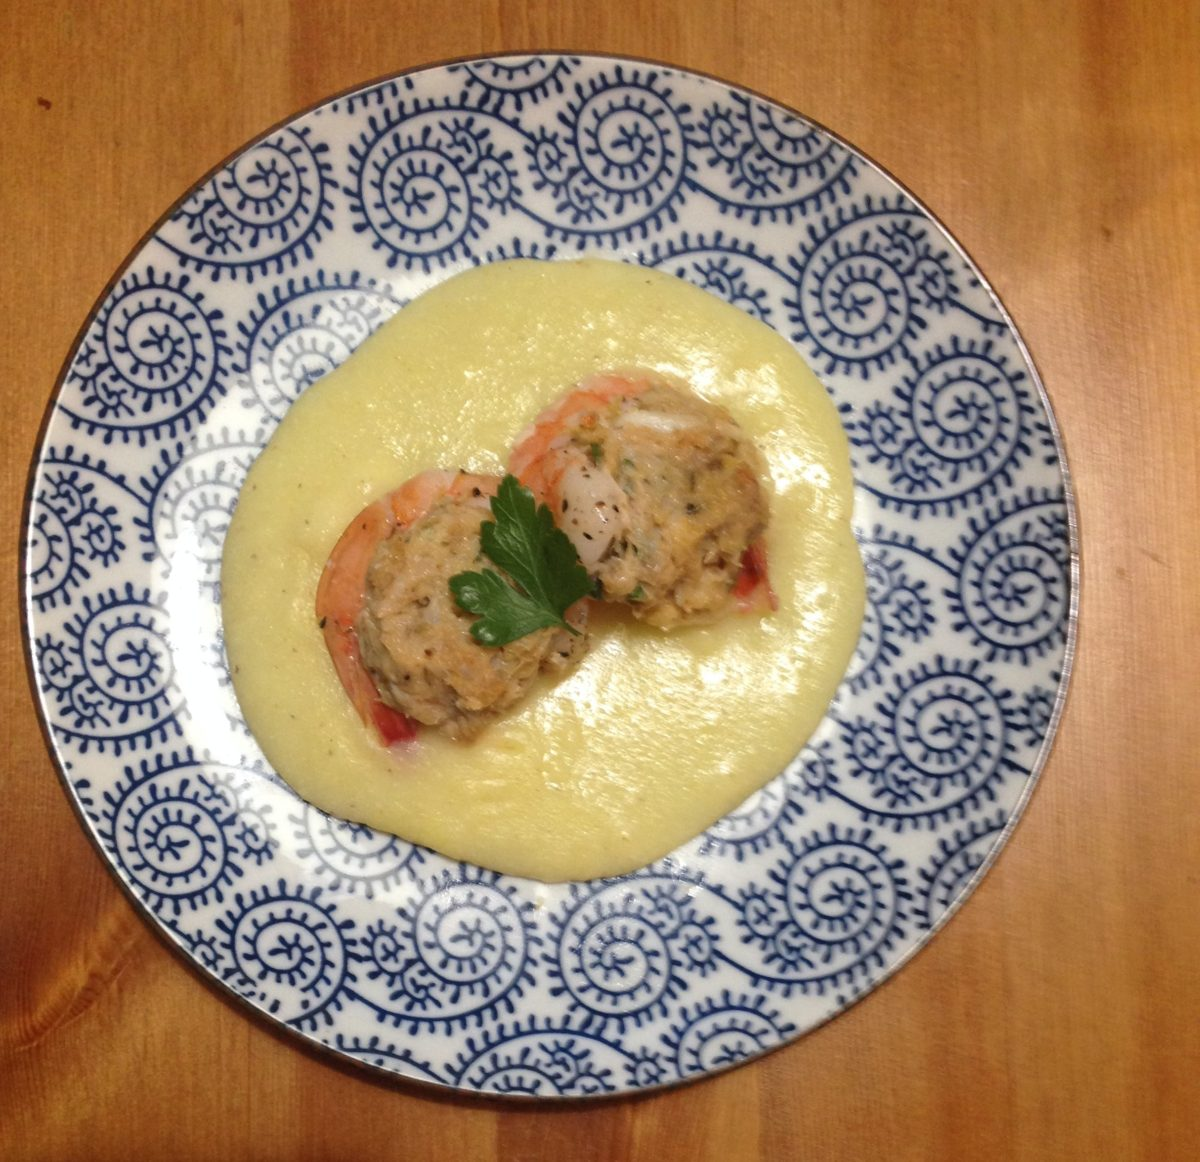 Crab Stuffed Shrimp with Beurre Blanc